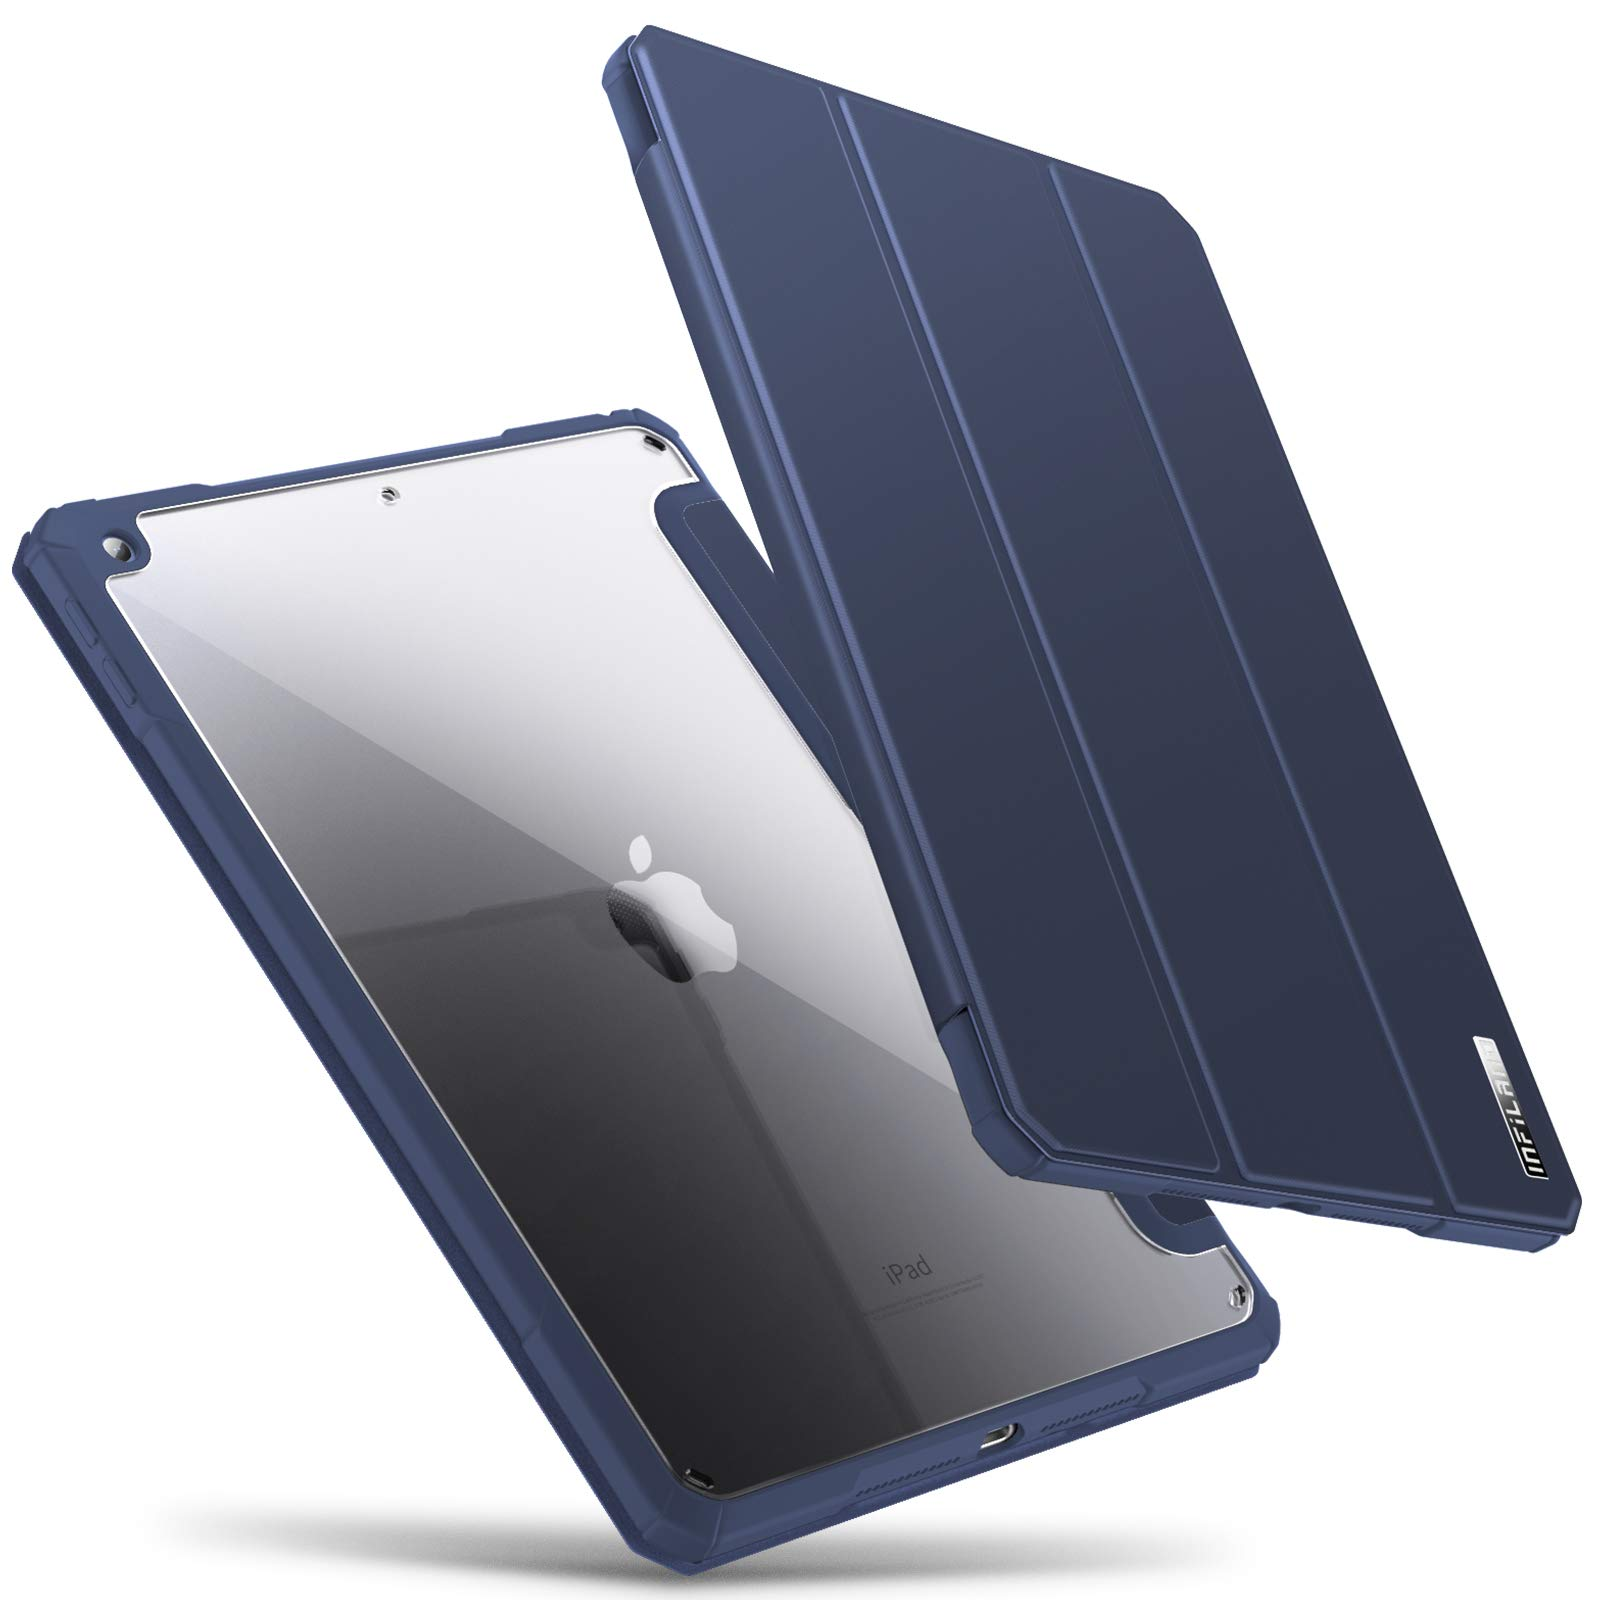 INFILAND iPad 9.7 case 6th Generation/ 5th Generation, Shockproof Ultra Slim Lightweight Rugged Protective Cover Case with Transparent Back for 9.7 inch iPad 6 (2018)/ iPad 5 (2017), Navy